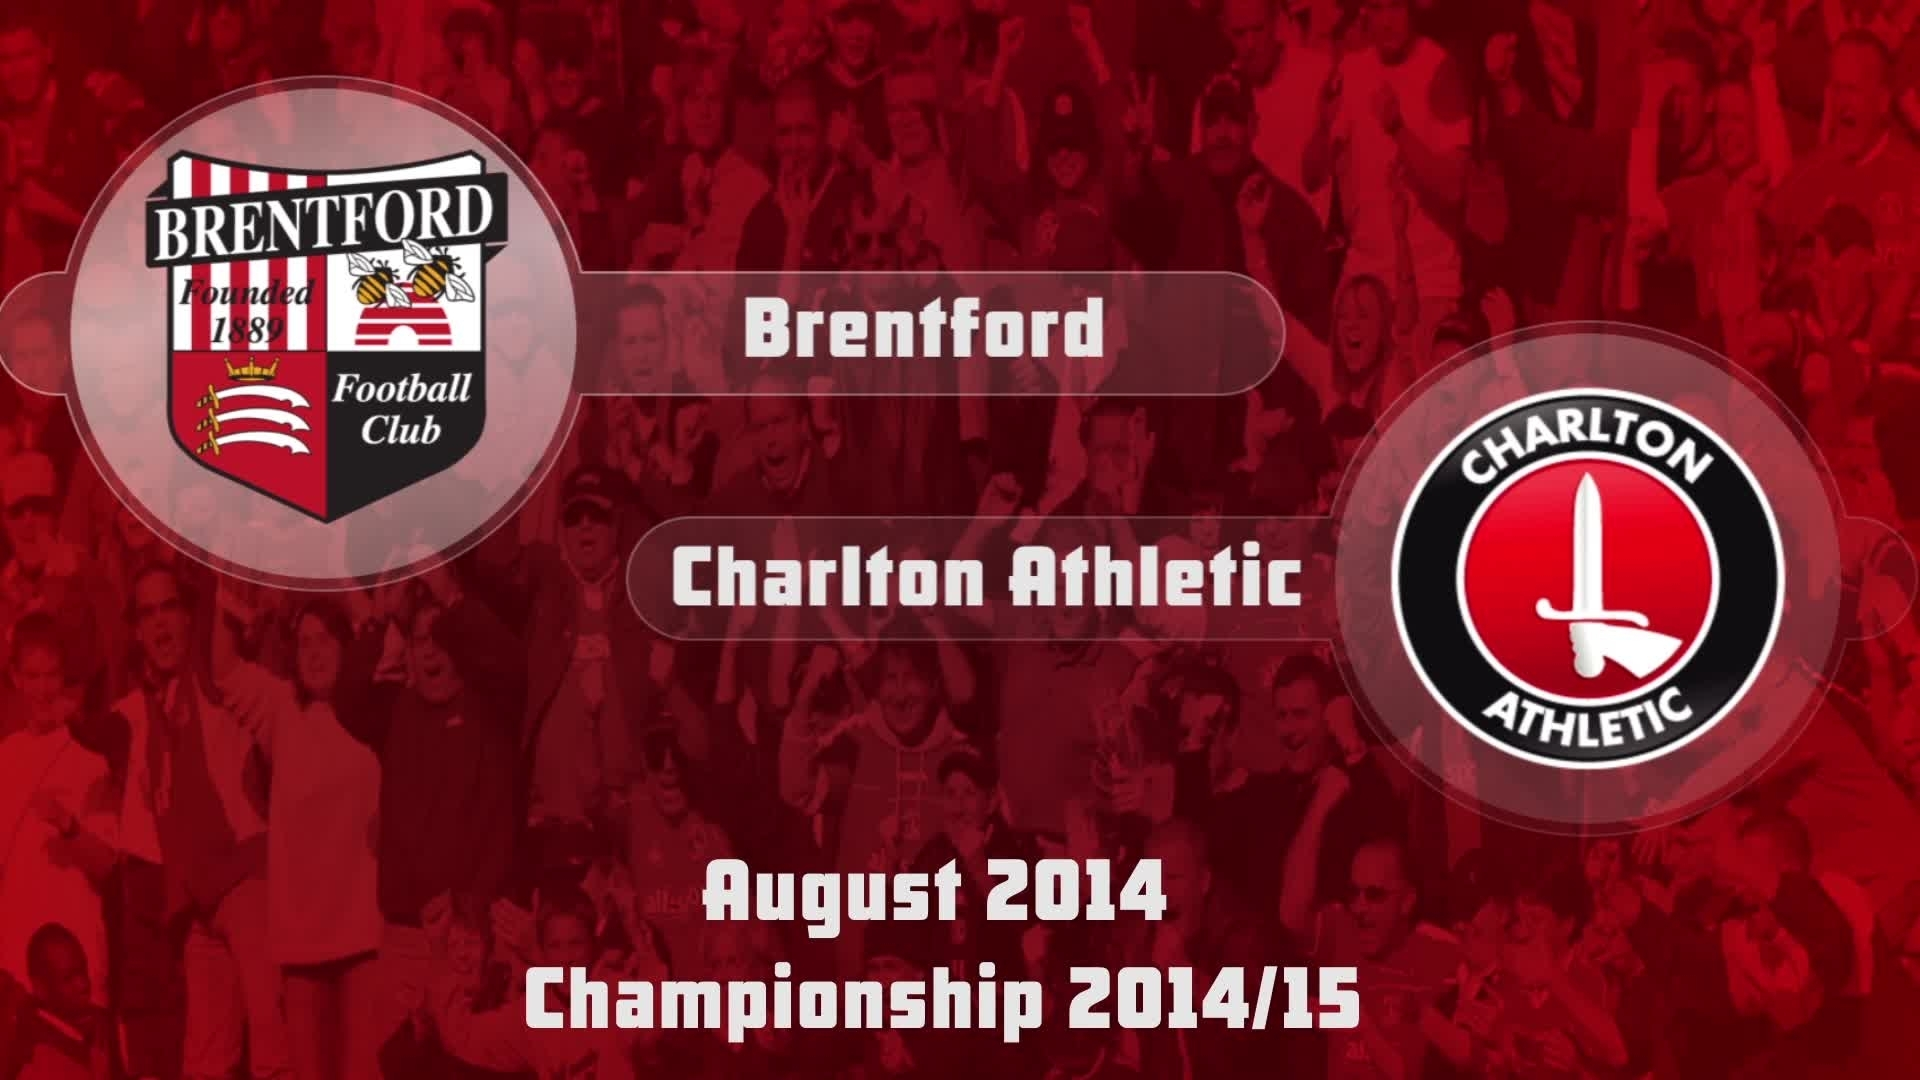 01 HIGHLIGHTS | Brentford 1 Charlton 1 (Aug 2014)